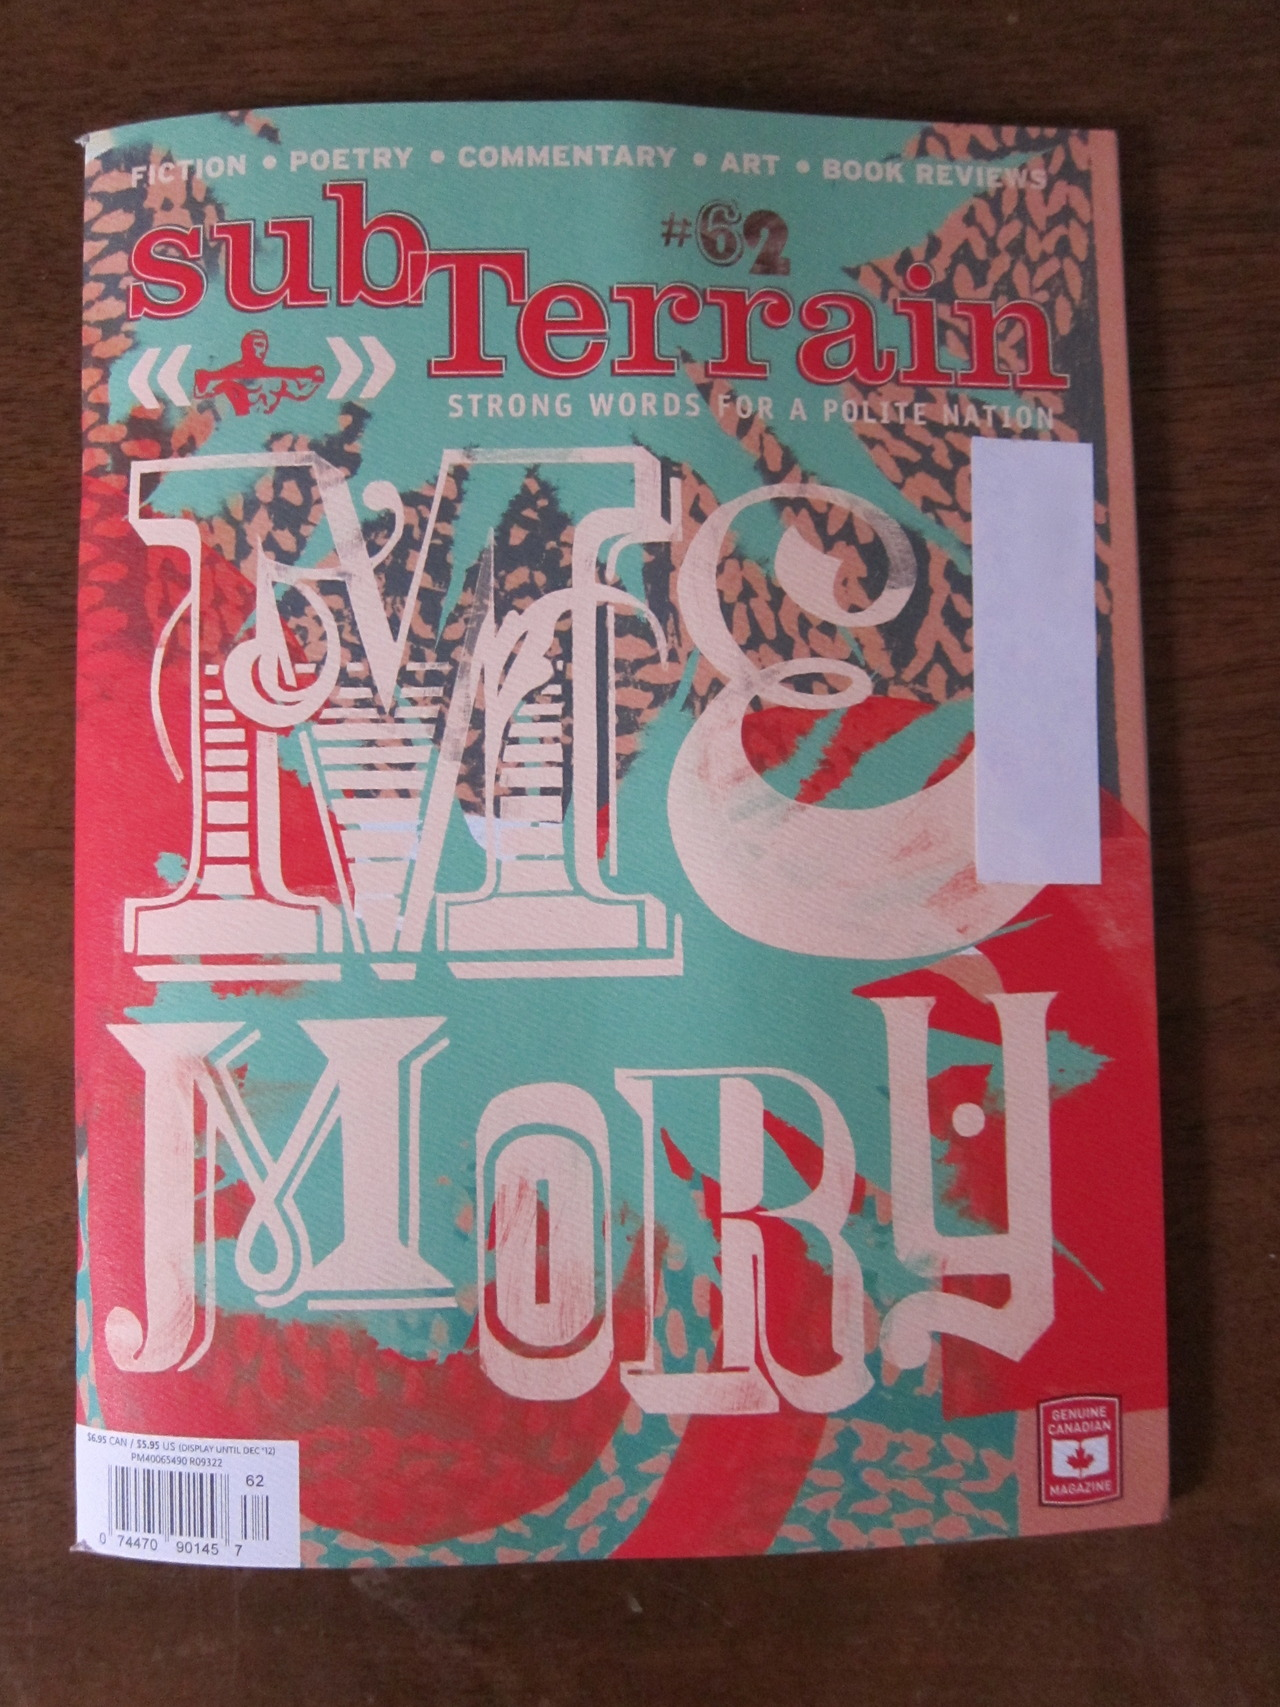 The wonderful people at the Canadian lit-mag SubTerrain (Strong Words for a Polite Nation) have just published my story  Spiritus Mundi  in their issue #62. Other awesome writers in this issue include poet Emily Davidson, reviewer Alex Leslie and novelist Michael Turner, author of the brilliant Pornographer's Poem.   Those of you in Canada can check the shelves of your local bookstore. BC people can buy it on the ferry! Big love to the Writers Festival and the good editors at subTerrain.